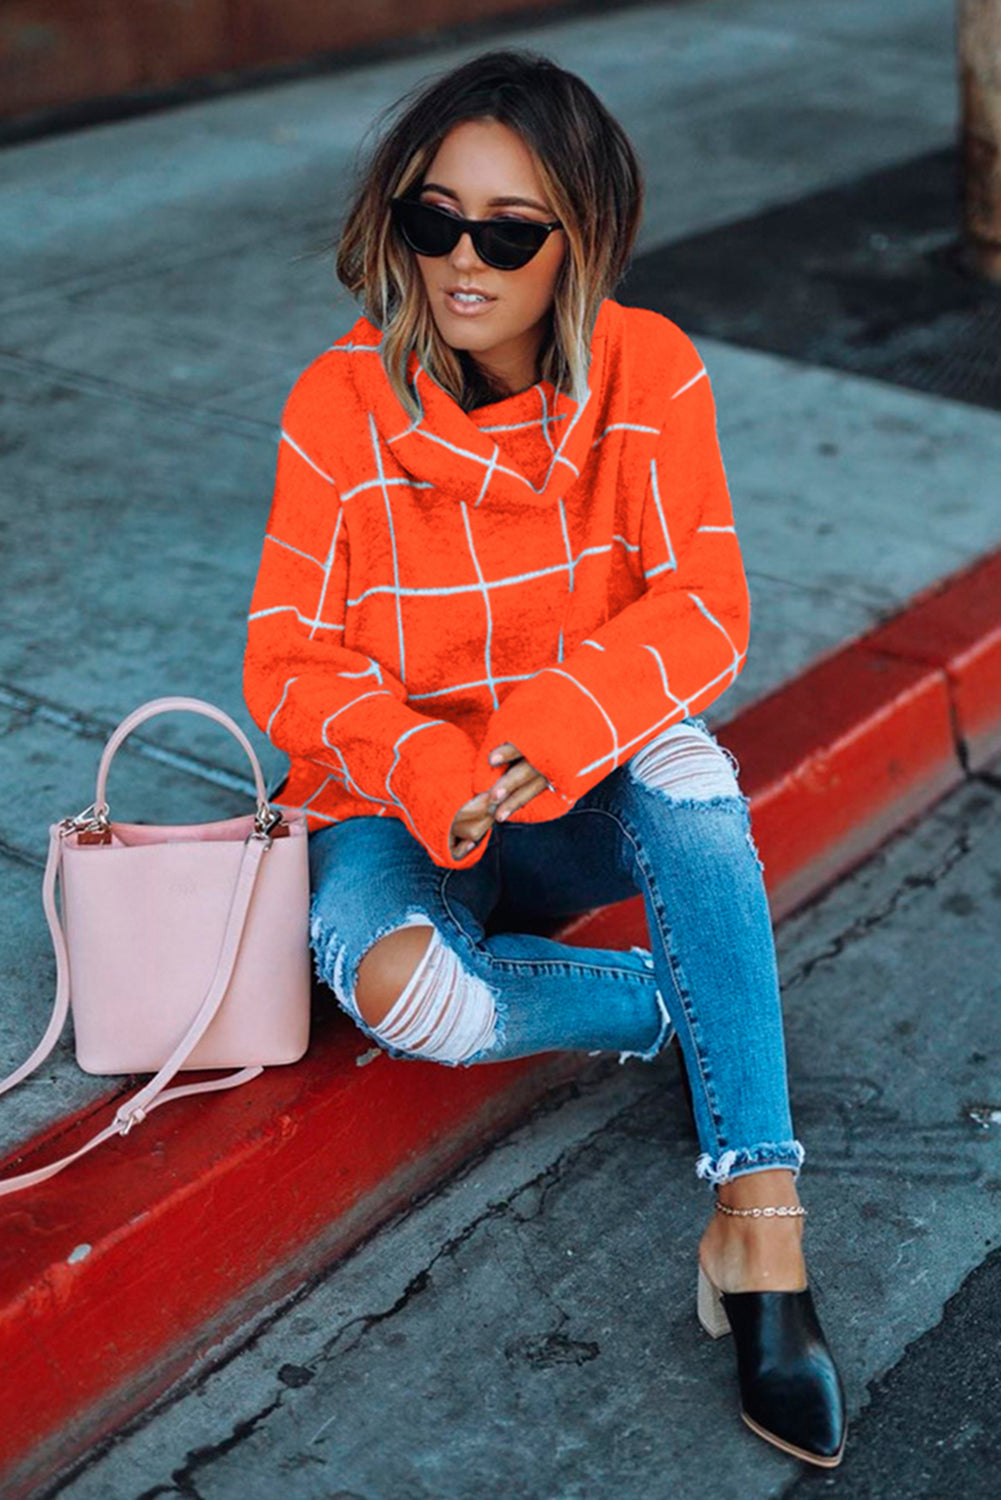 Orange Grid Pattern Turtleneck Sweater Sweaters & Cardigans Discount Designer Fashion Clothes Shoes Bags Women Men Kids Children Black Owned Business